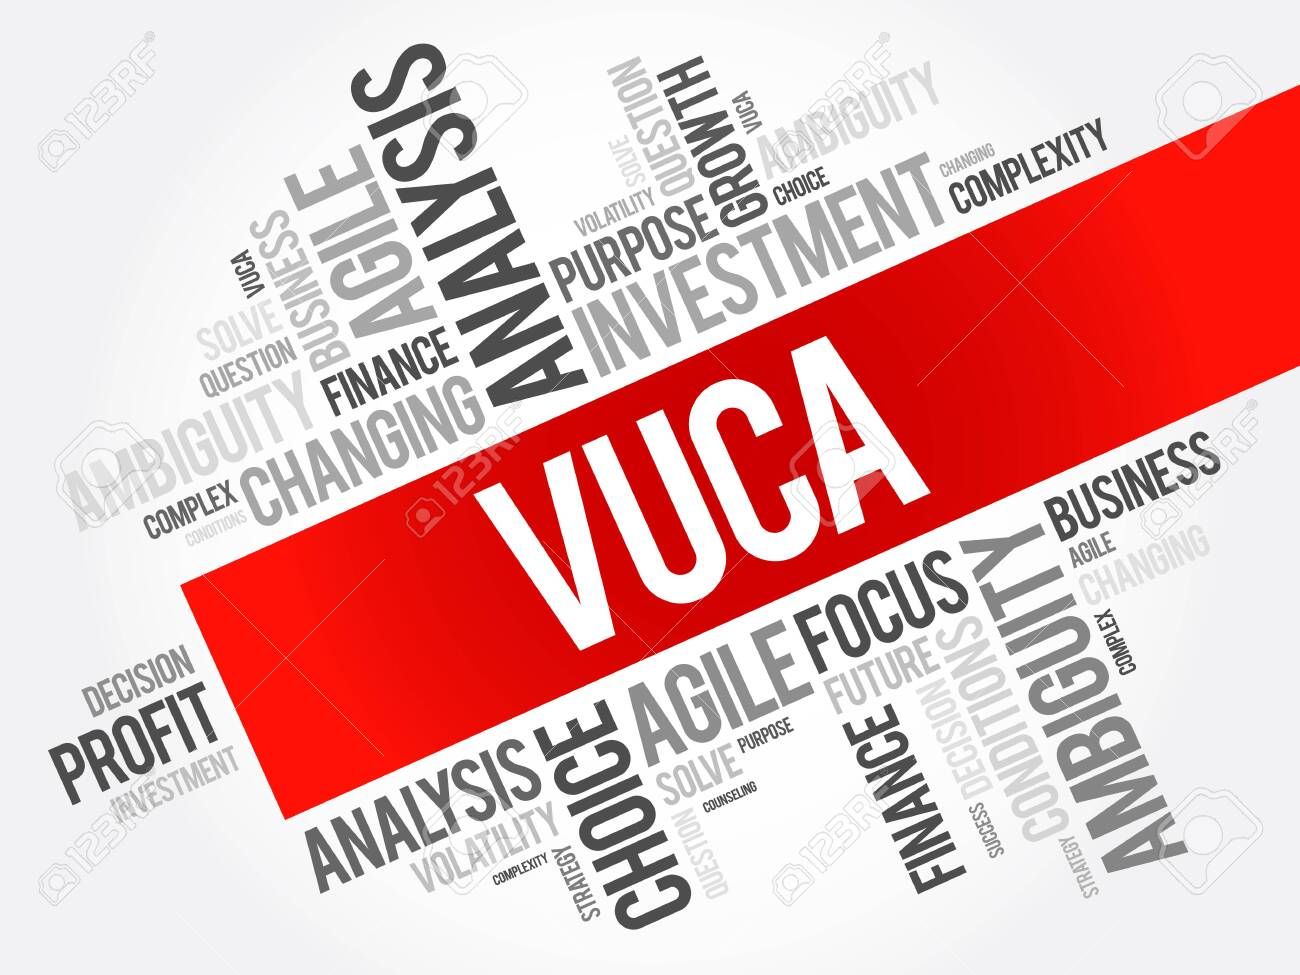 VUCA - Volatility, Uncertainty, Complexity, Ambiguity acronym word cloud, business concept background - 124400069